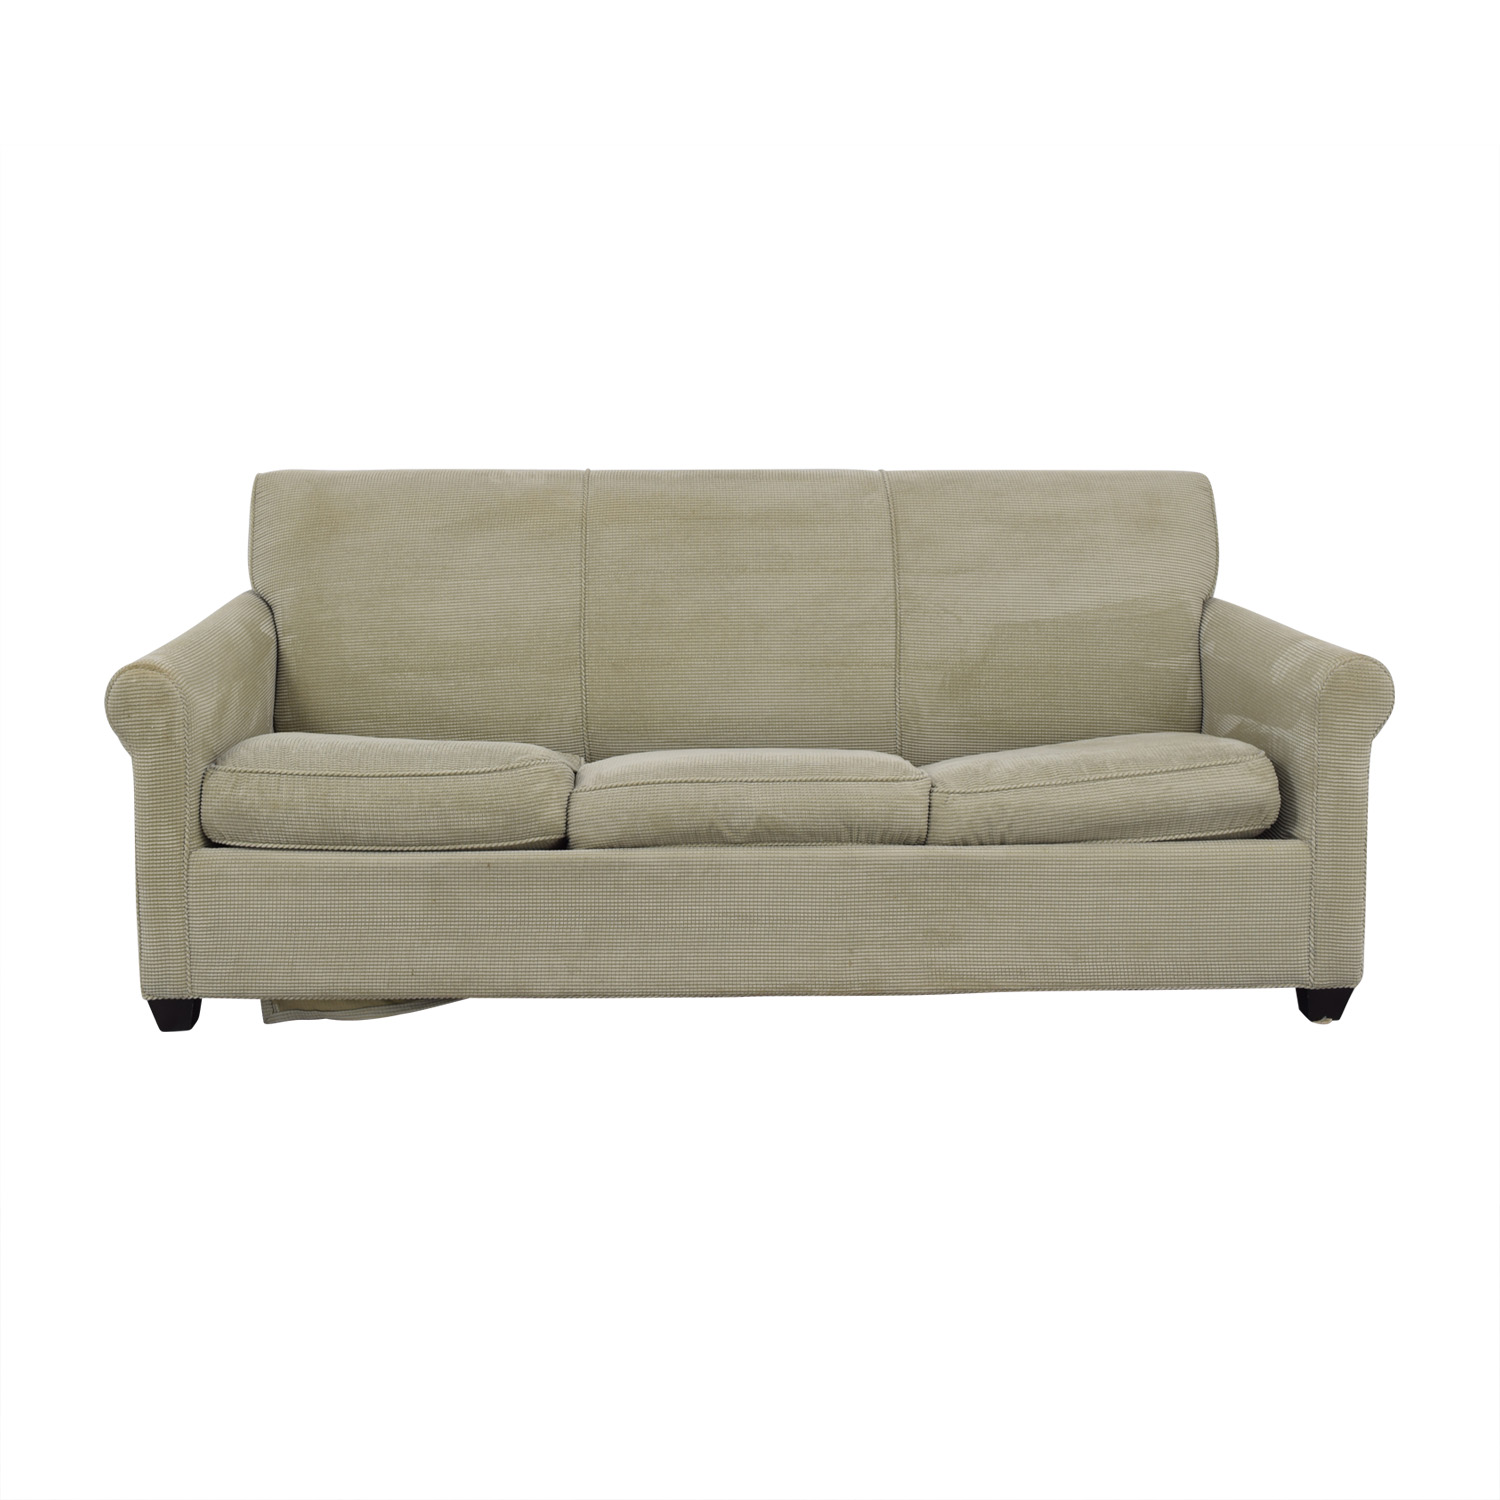 76% OFF - La-Z-Boy La-Z-Boy Full Sleeper Sofa / Sofas